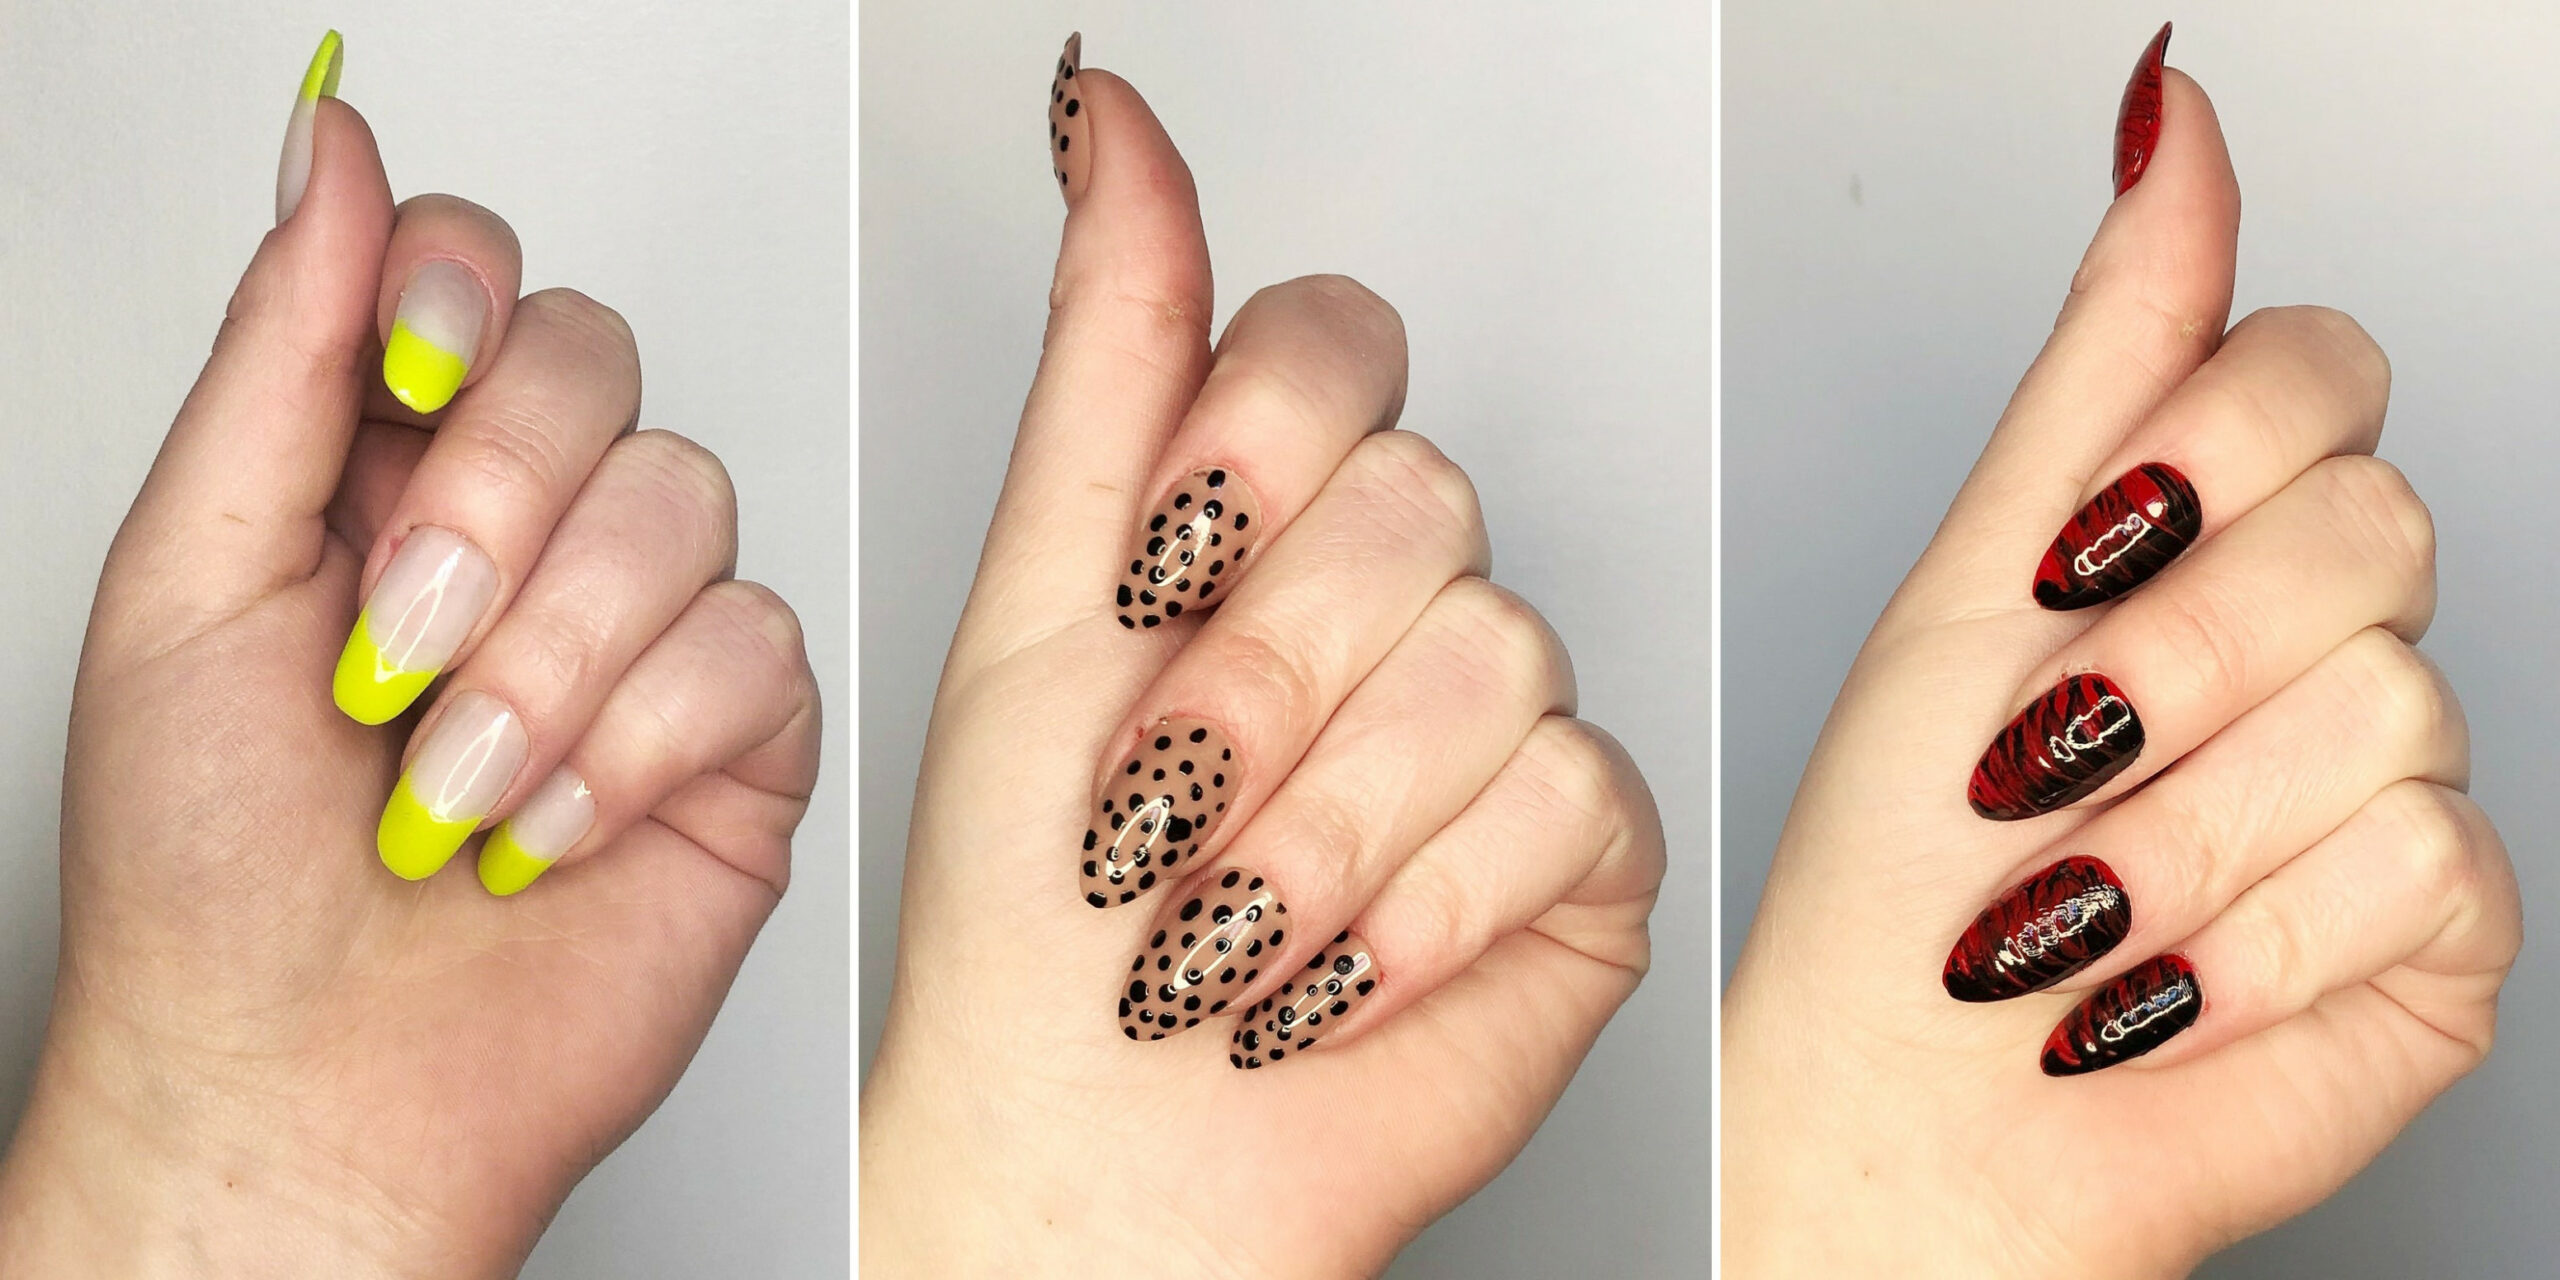 11 Household Tools to Make Easy Nail-Art Designs at Home — Editor